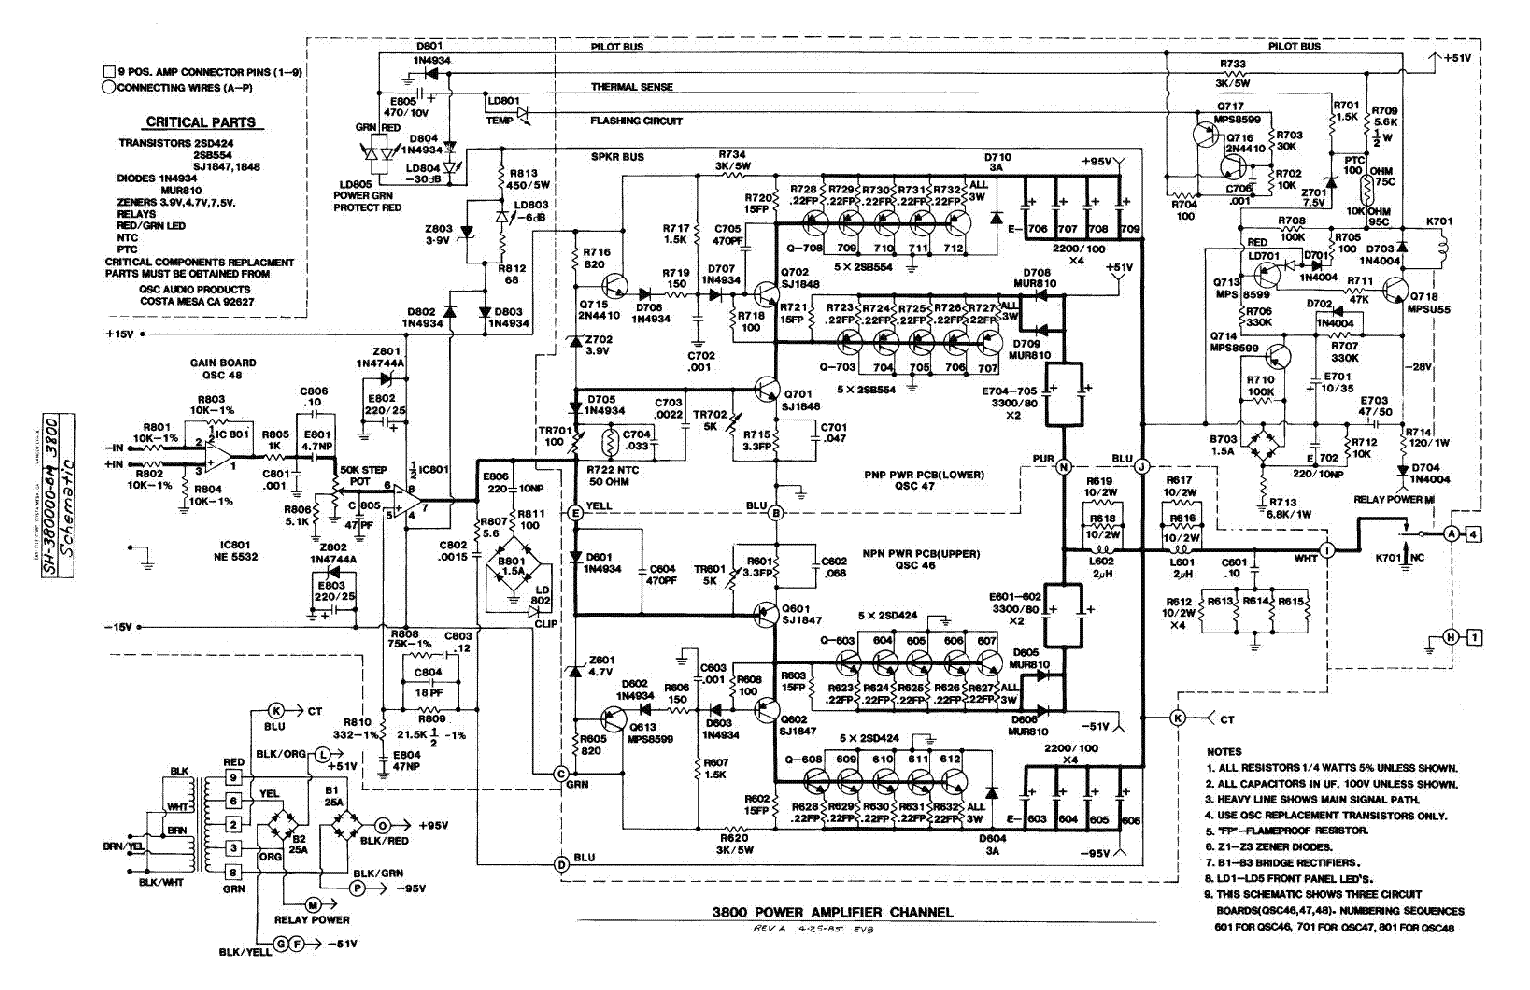 1977 ford f100 wiring diagram pdf